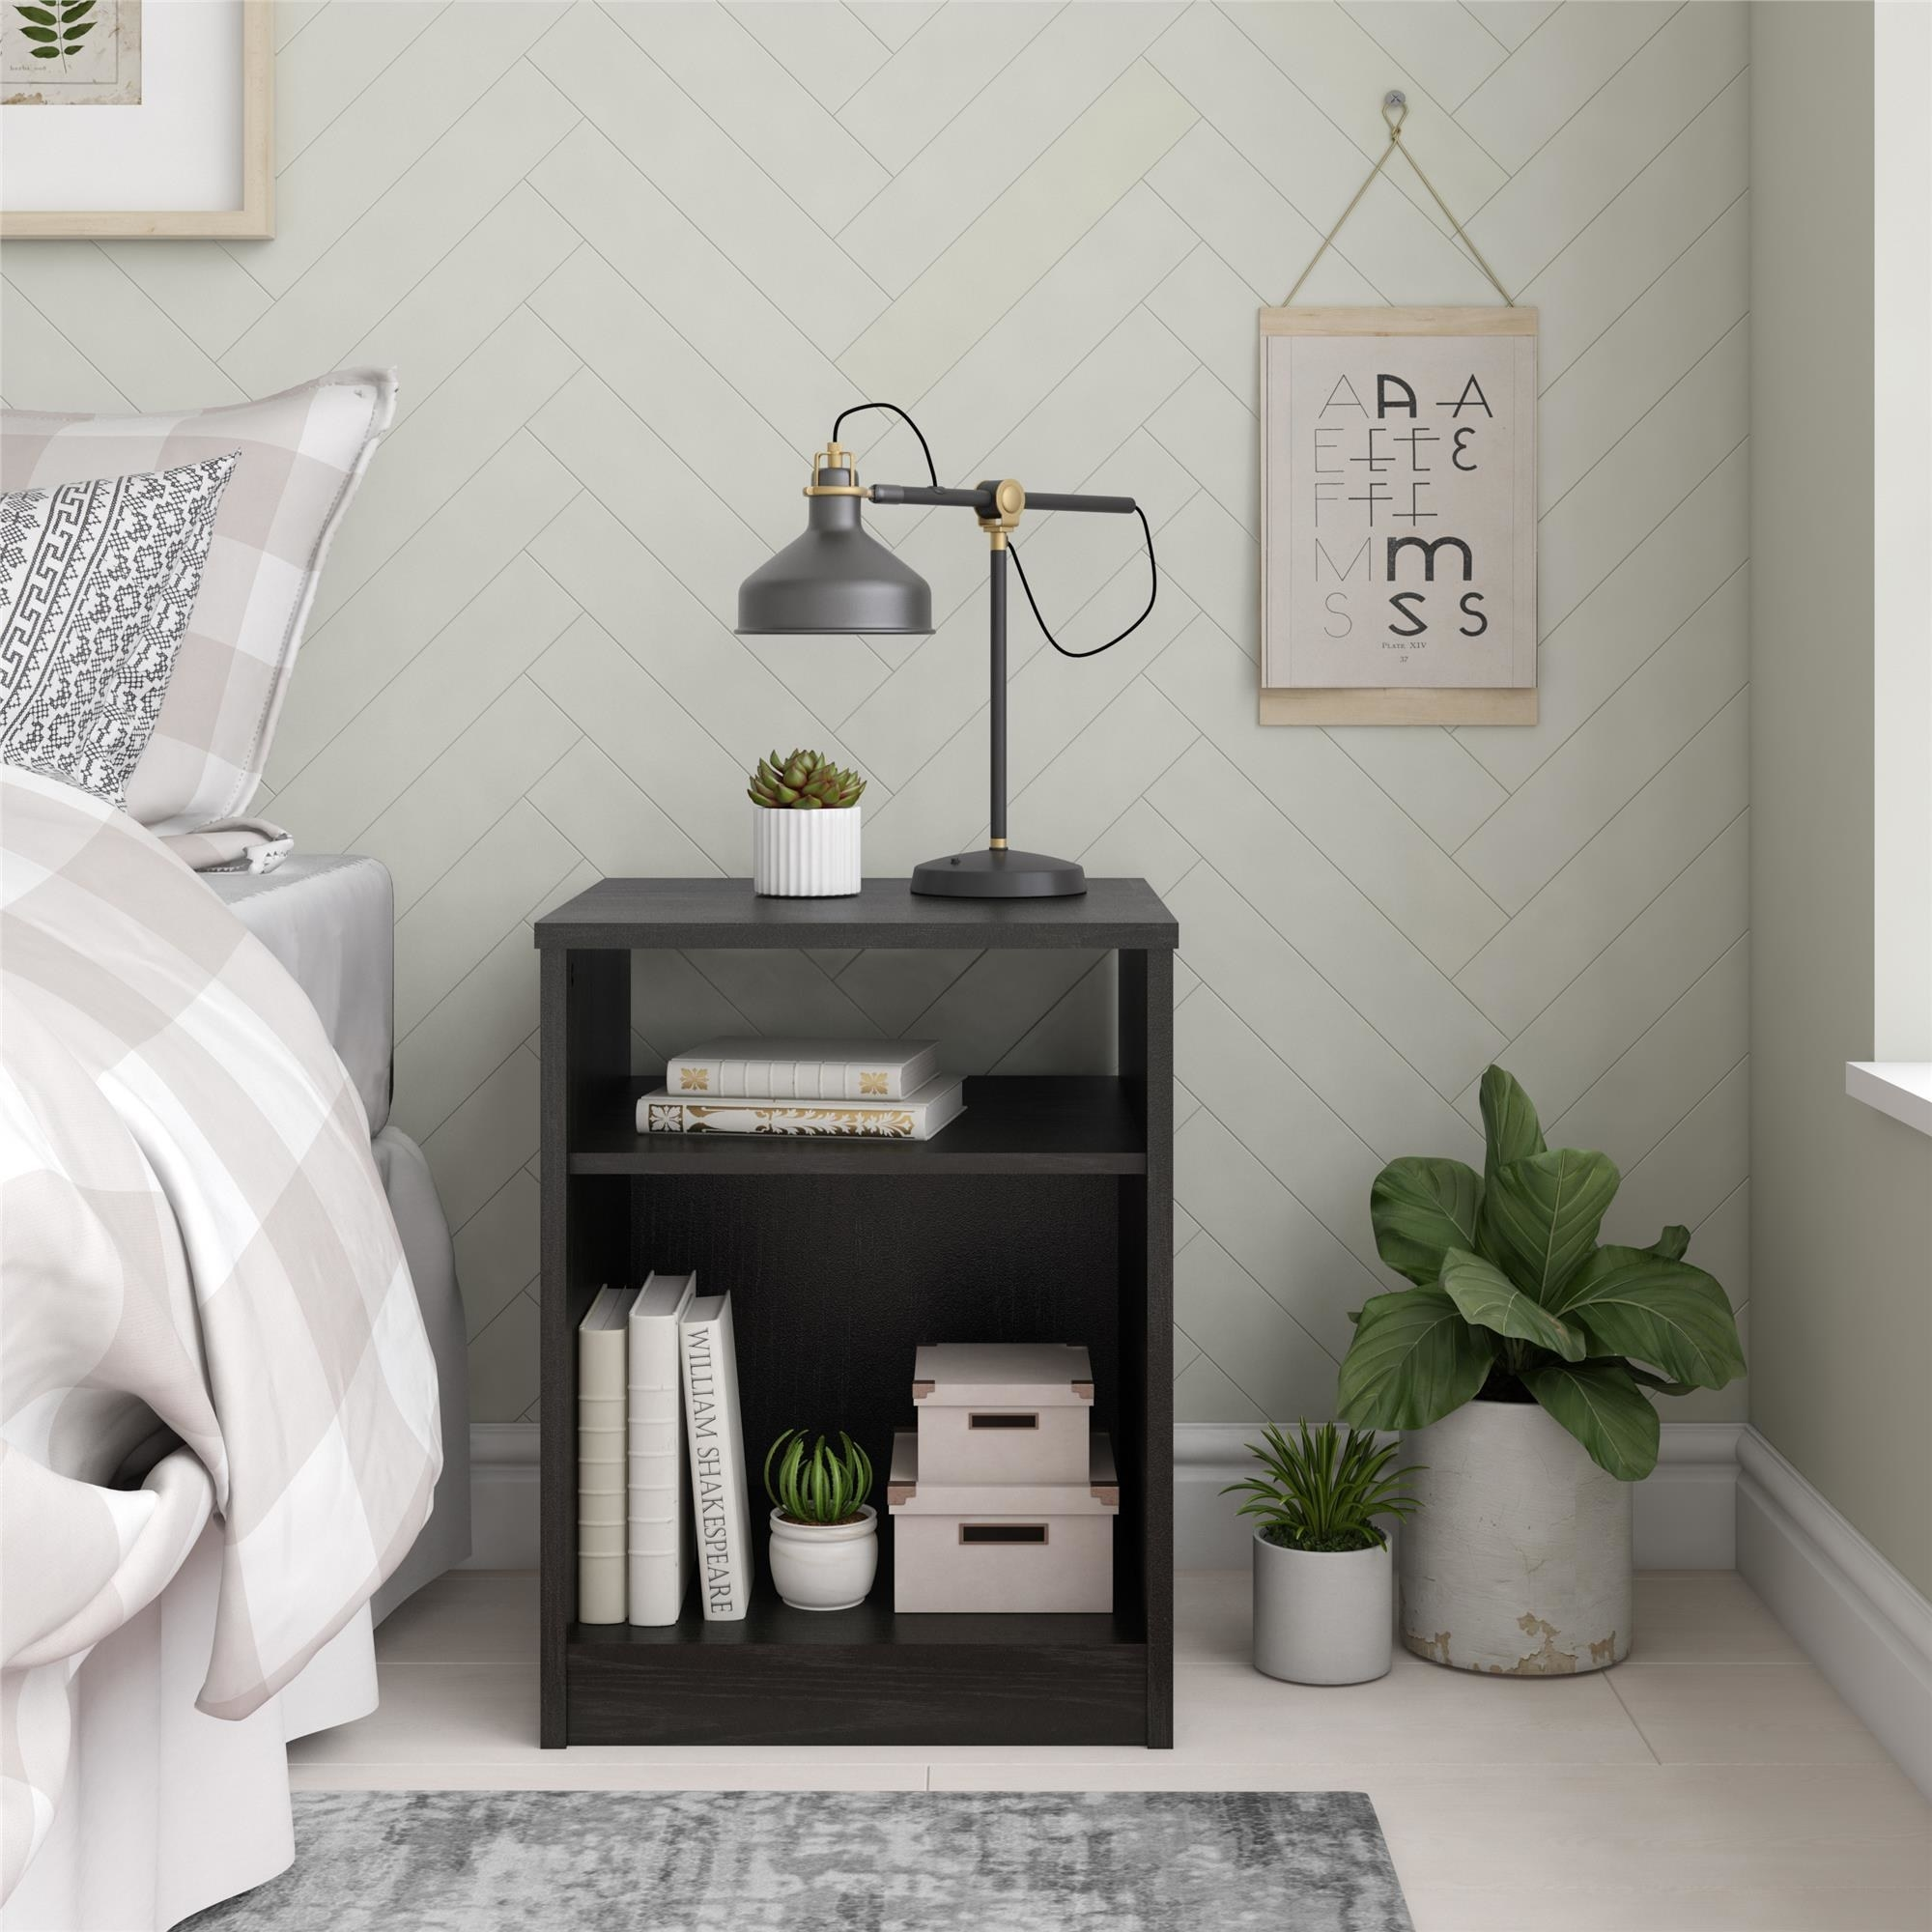 a black open shelf night stand with books and boxes on its two shelves, and a lamp and plant on its top